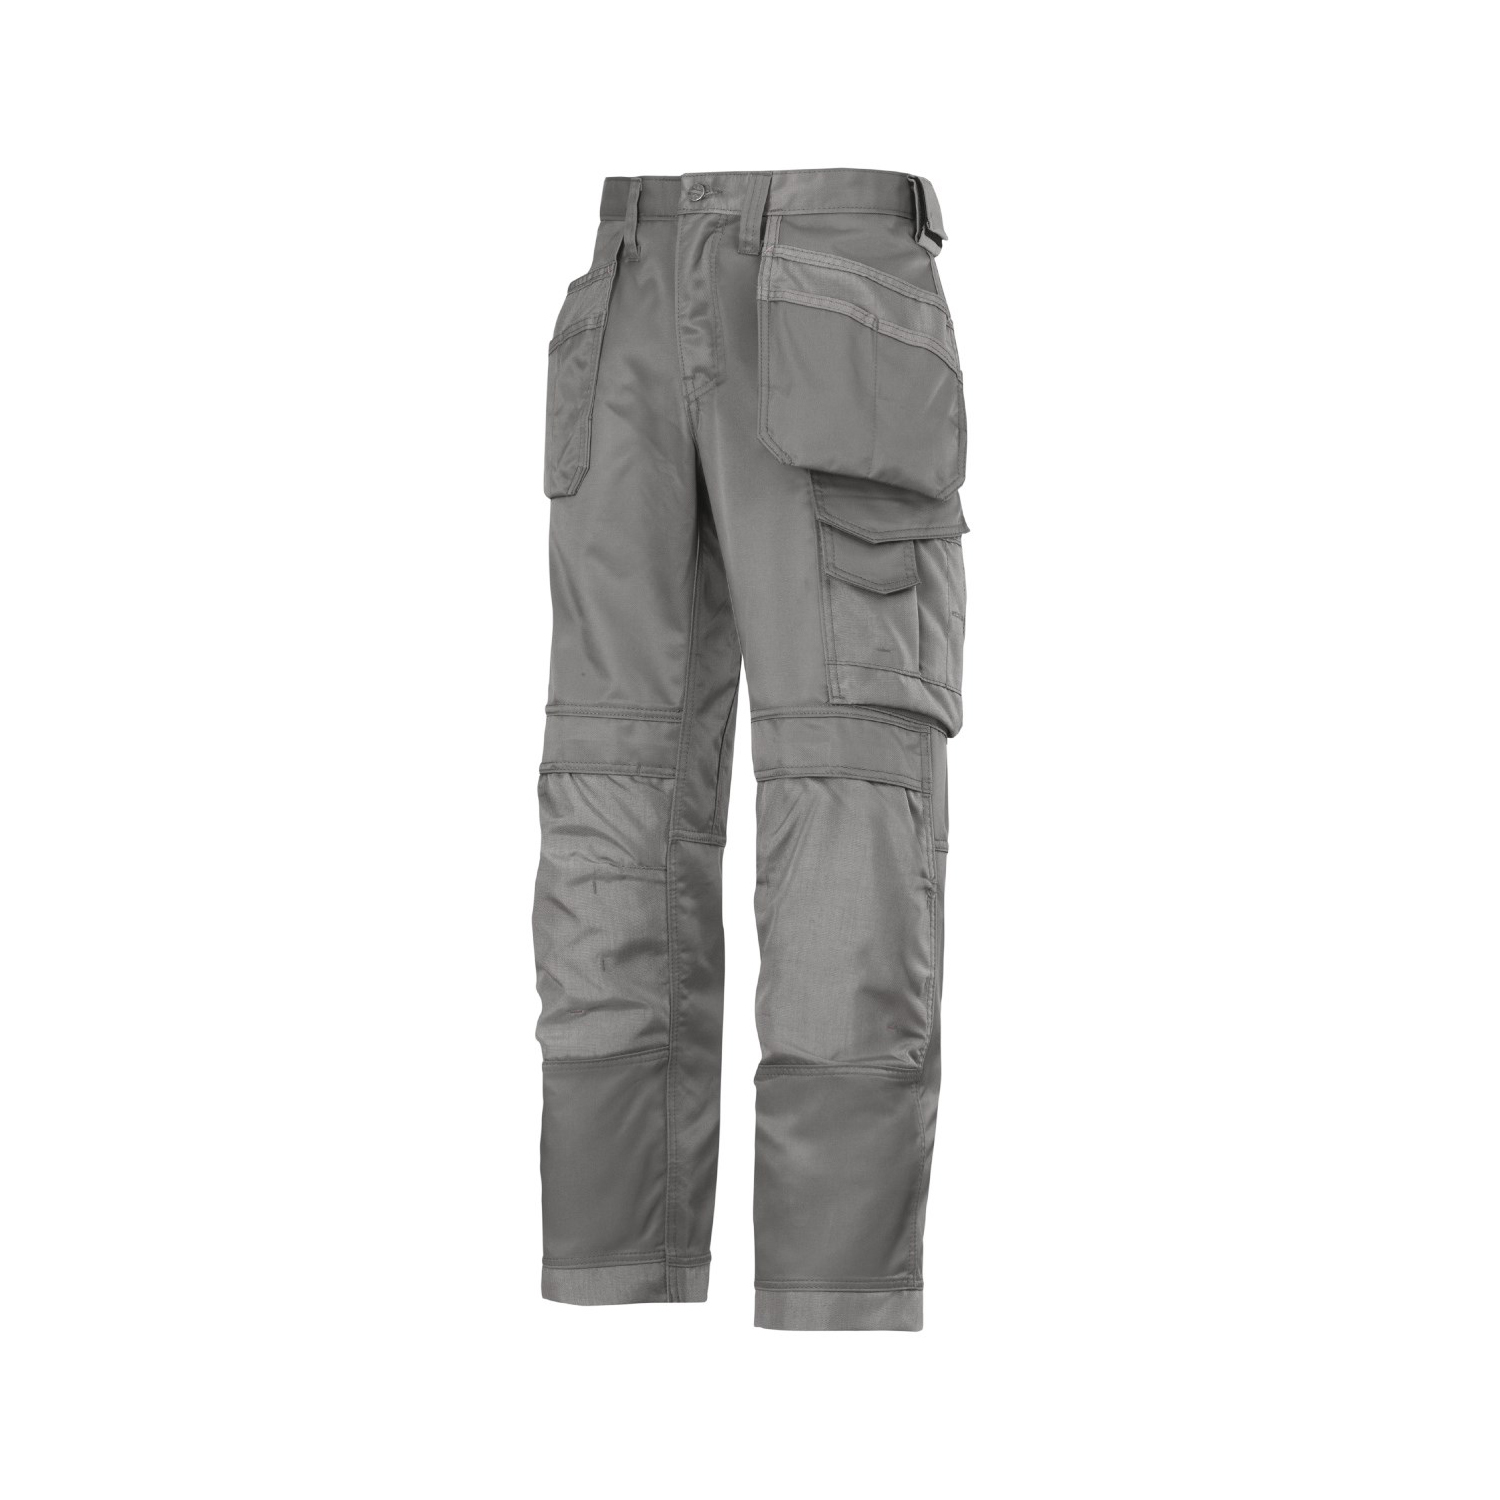 WorkTrousers Grey